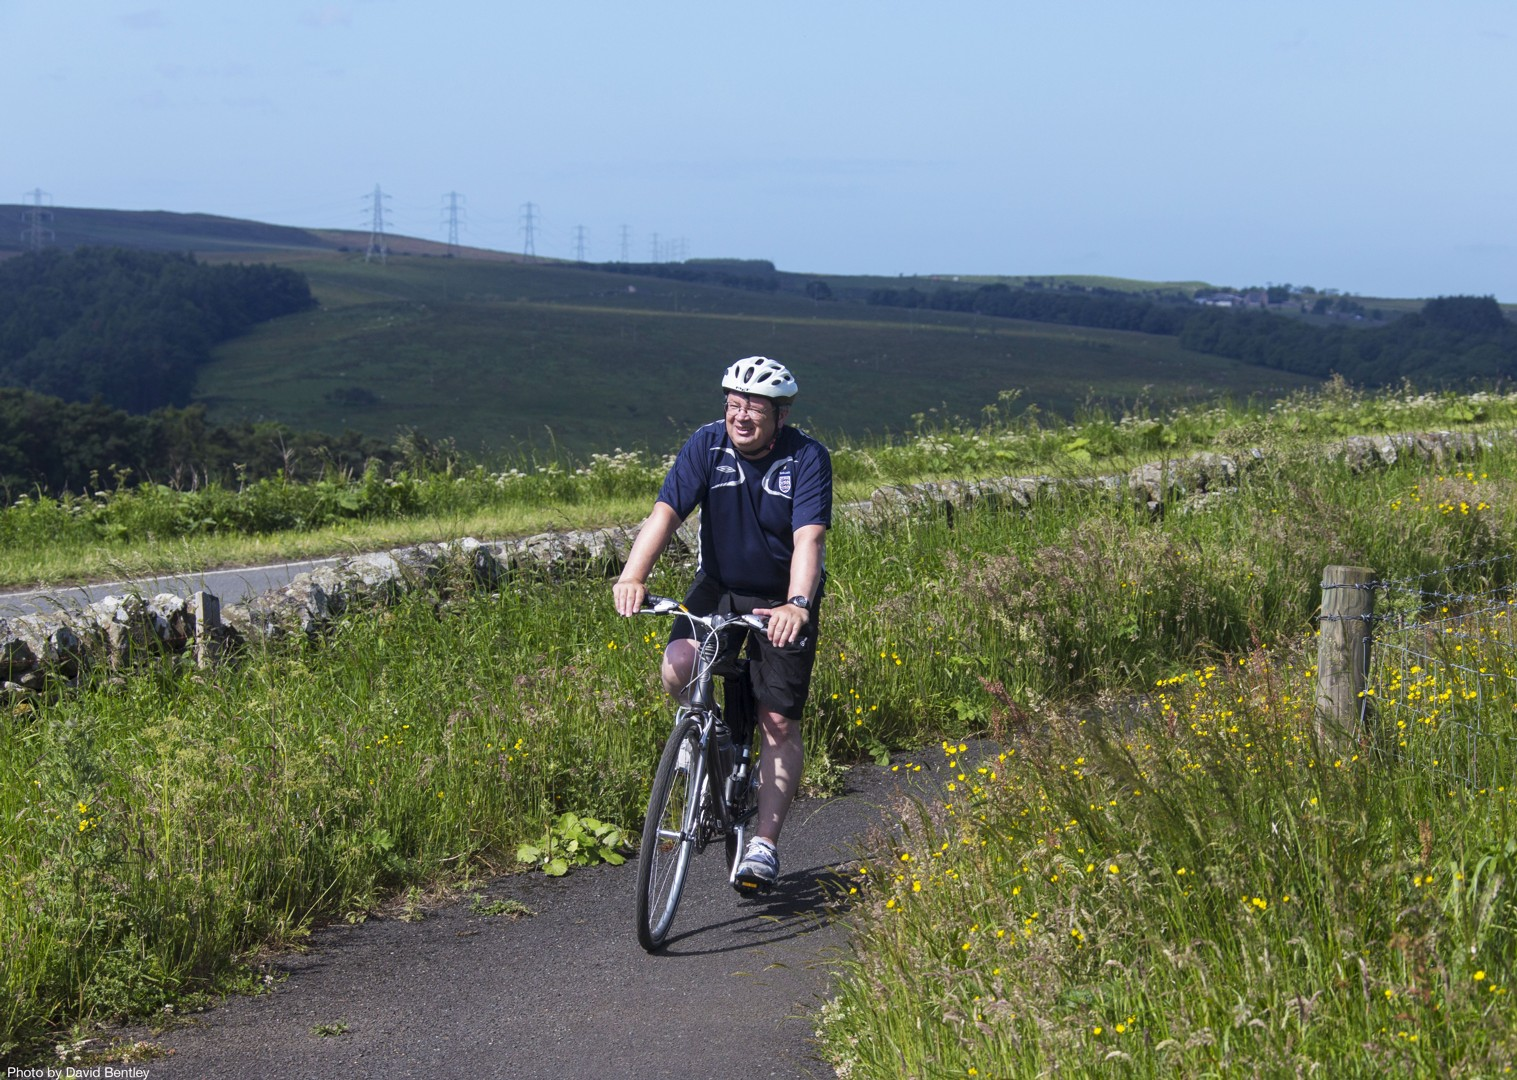 Self-Guided-Leisure-Cycling-Holiday-Hadrians-Cycleway-UK-forts-of-Birdoswald-Vindolanda.jpg - UK - Hadrian's Cycleway - 2 Days Cycling - Self-Guided Leisure Cycling Holiday - Leisure Cycling